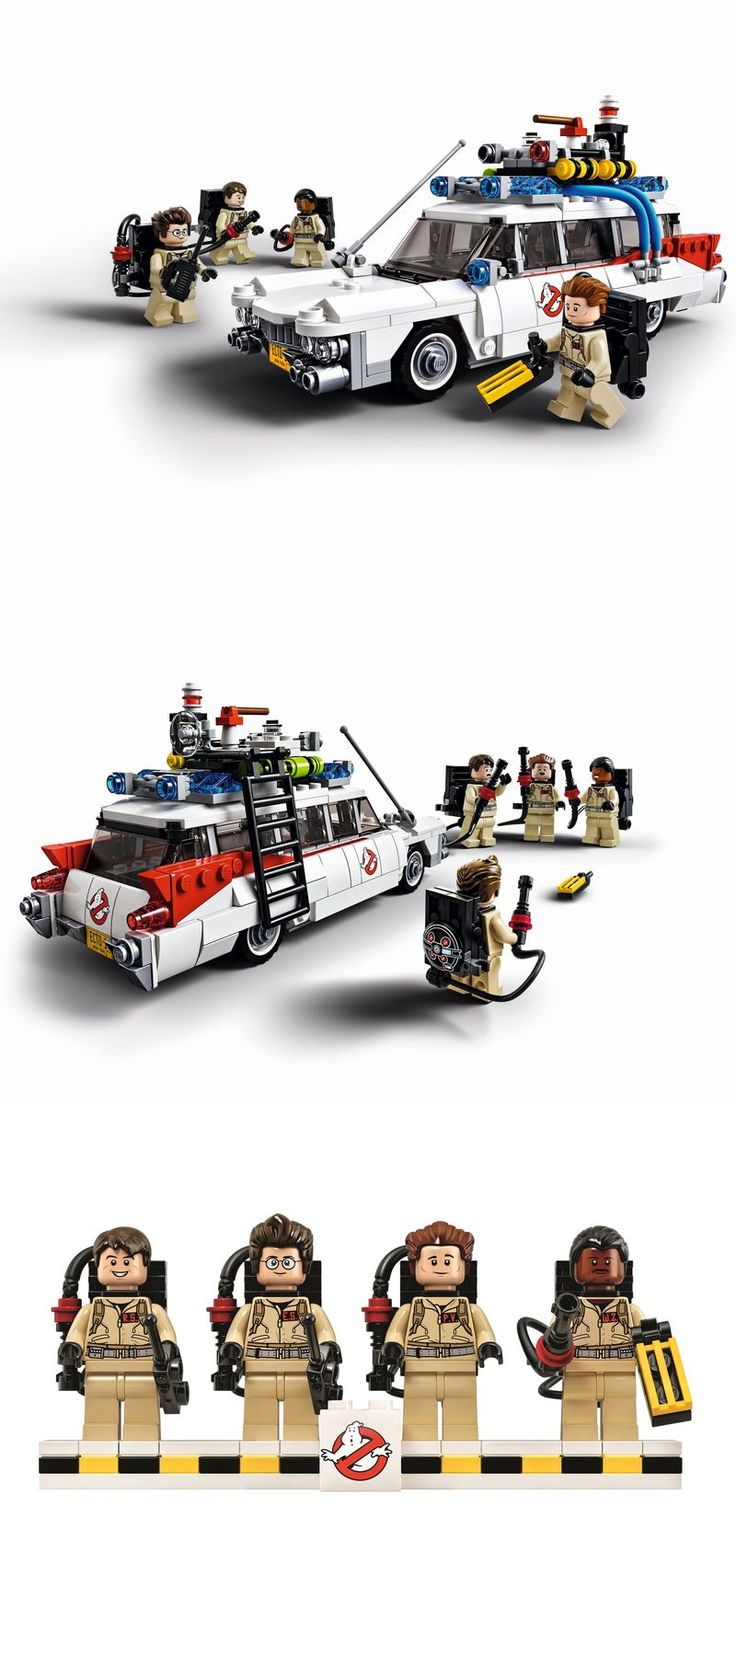 LEGO 21108 - Ghostbusters - Coming from 2014 June!